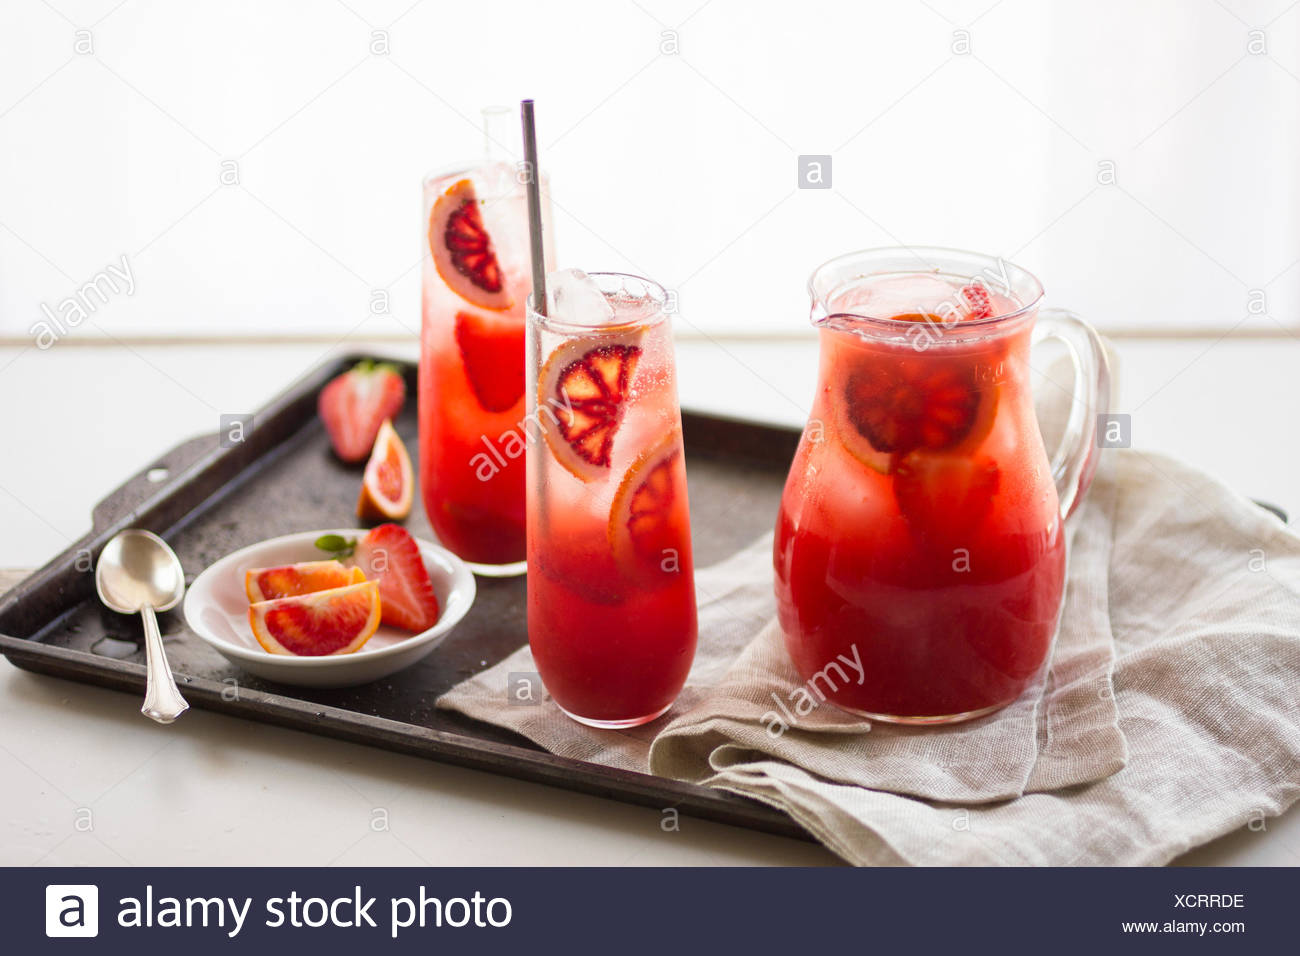 Blood orange strawberry punch drink - Stock Image